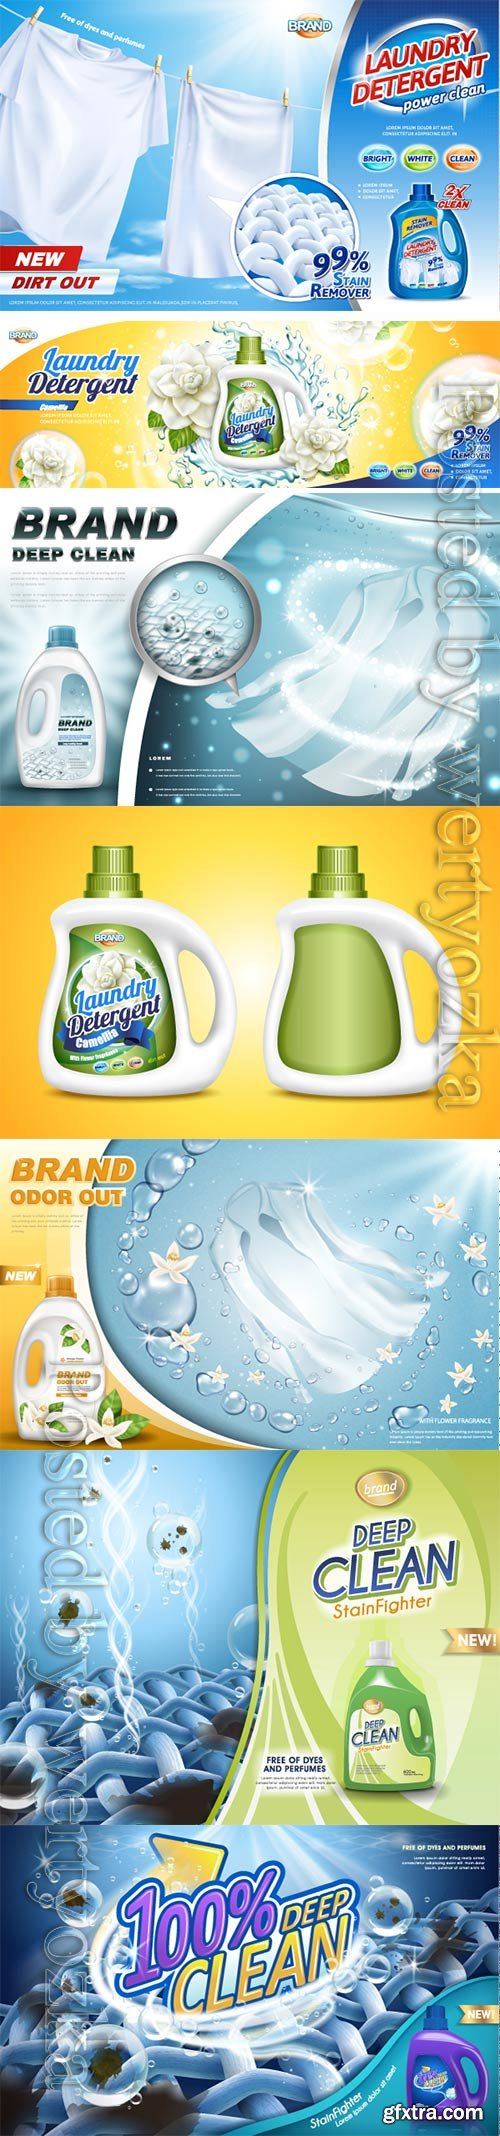 Laundry detergent ads vector collection